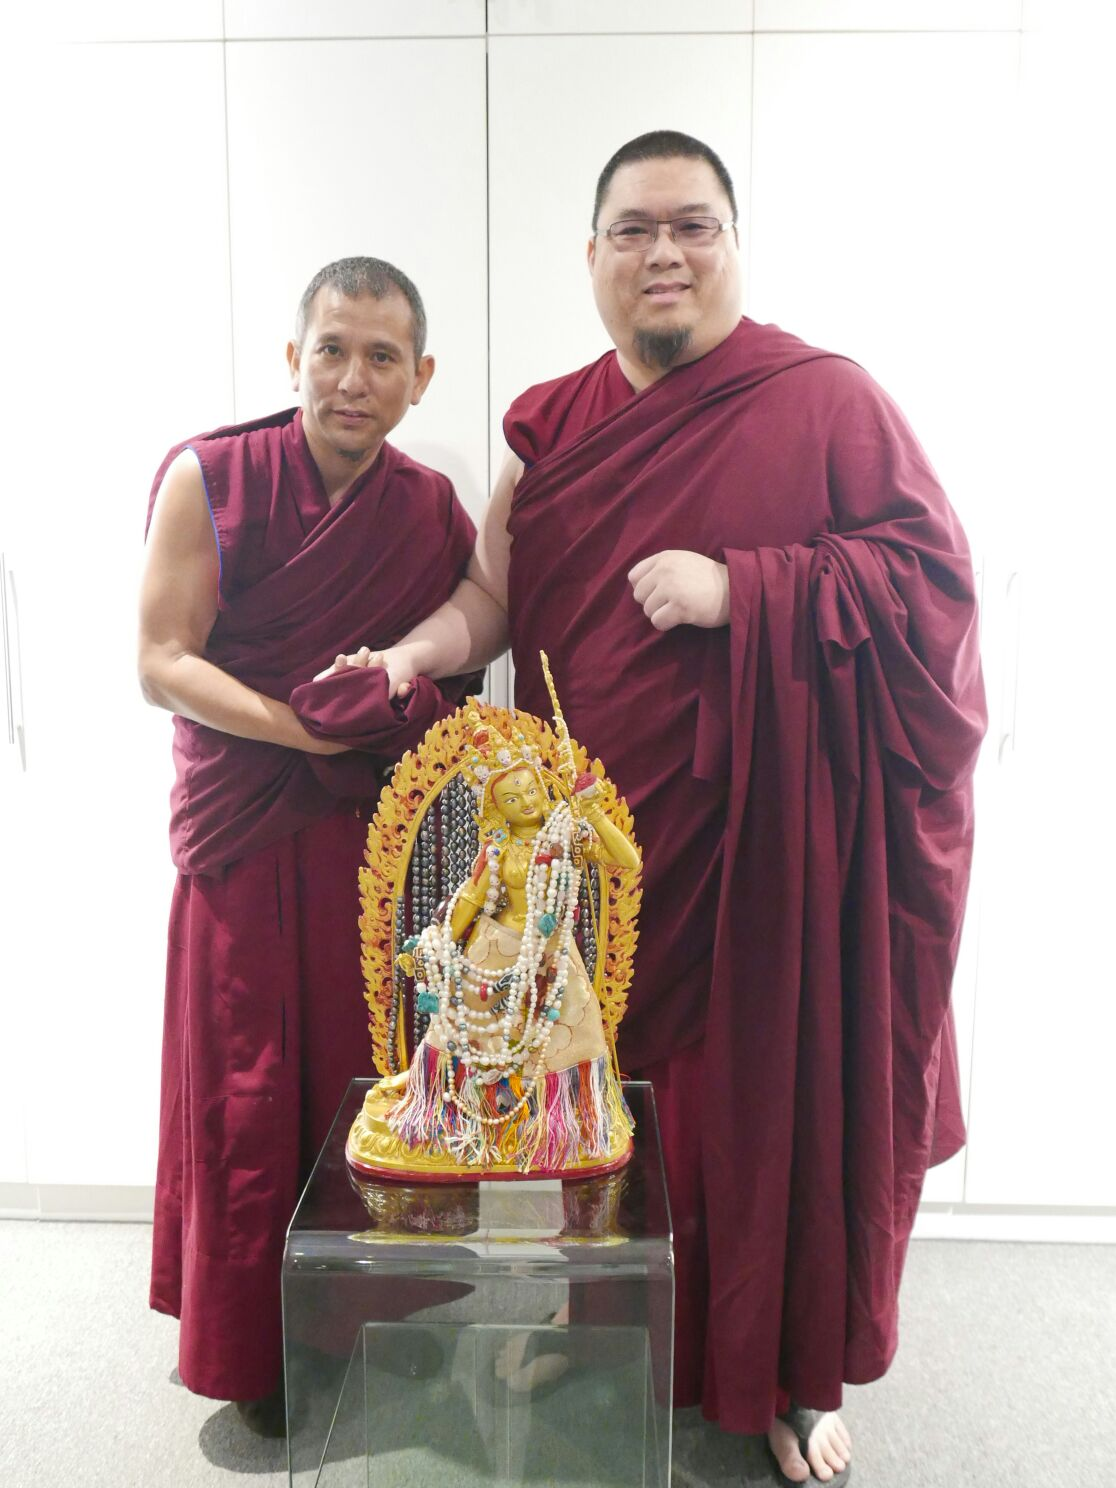 Rinpoche offering a Vajra Yogini statue to Geshe Phuntsok's retreat. Click on image to enlarge.